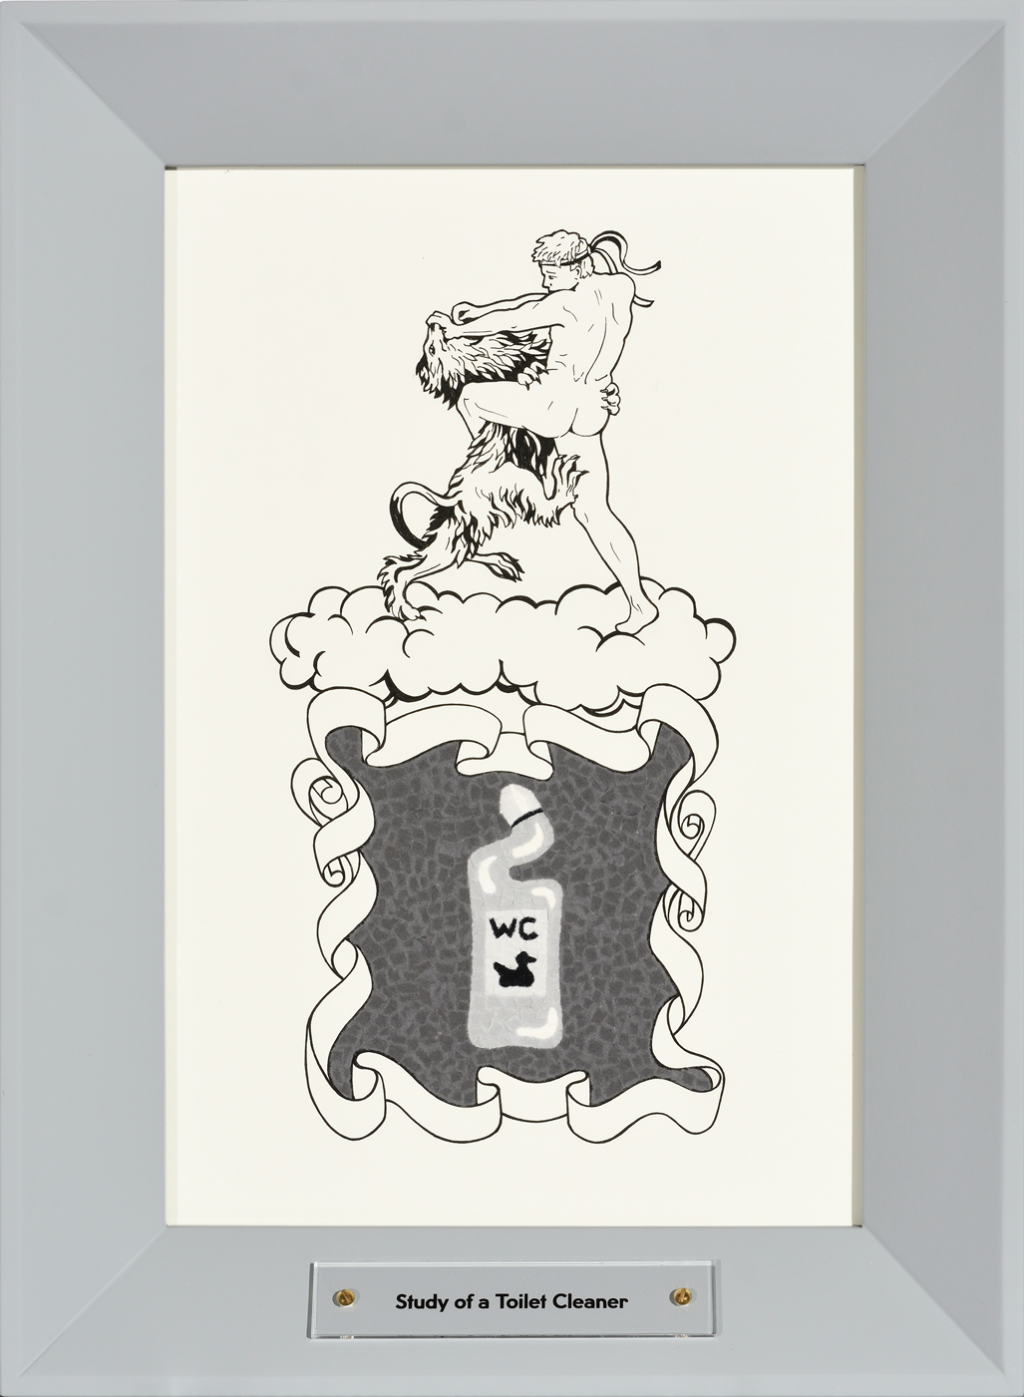 a coat of arms with a man wrestling a lion and a toilet cleaner